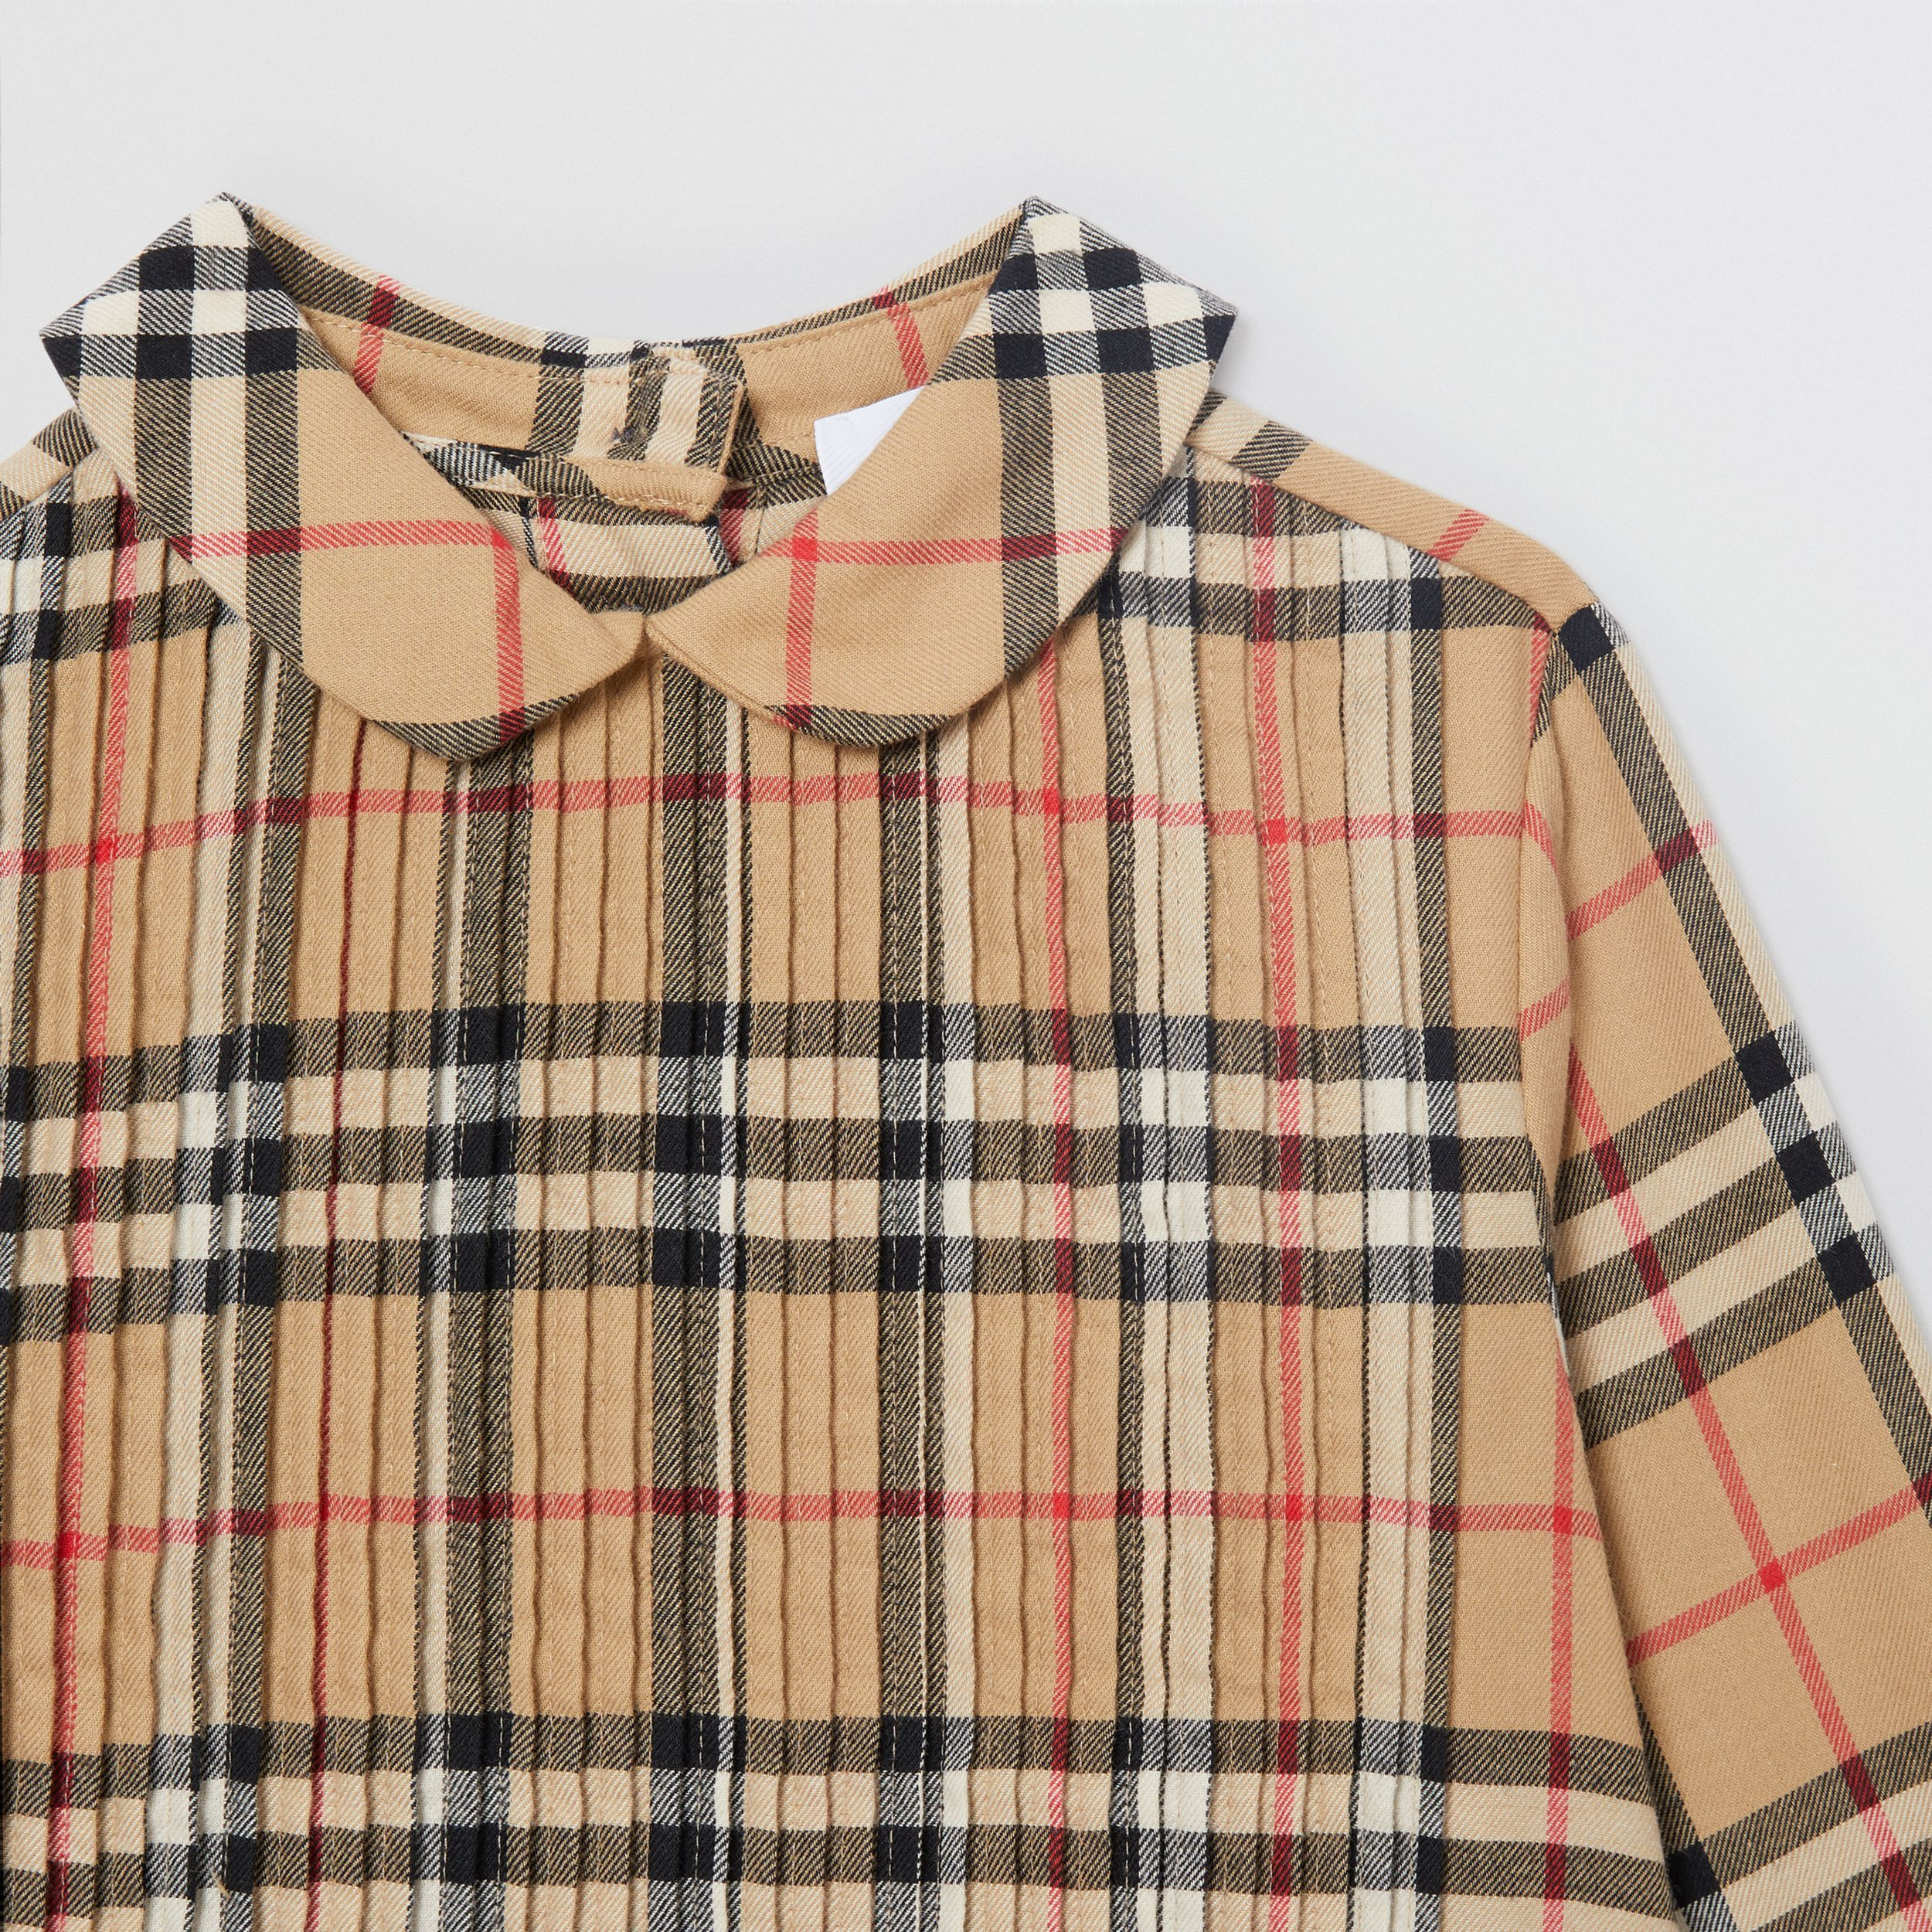 Pintuck Detail Vintage Check Cotton Twill Blouse in Archive Beige | Burberry - 4